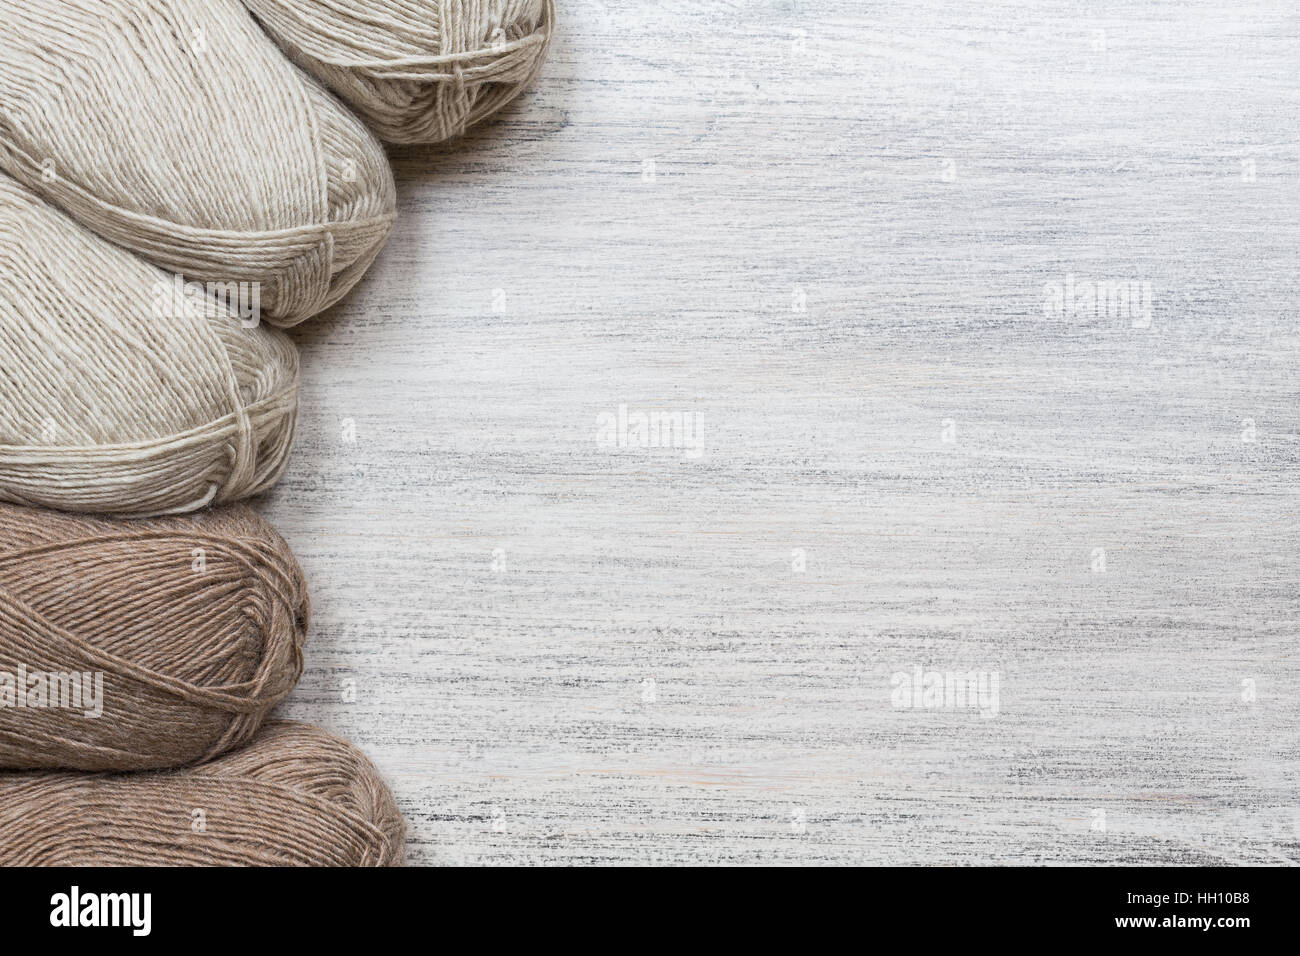 spool of yarn stock photos spool of yarn stock images page 3 alamy